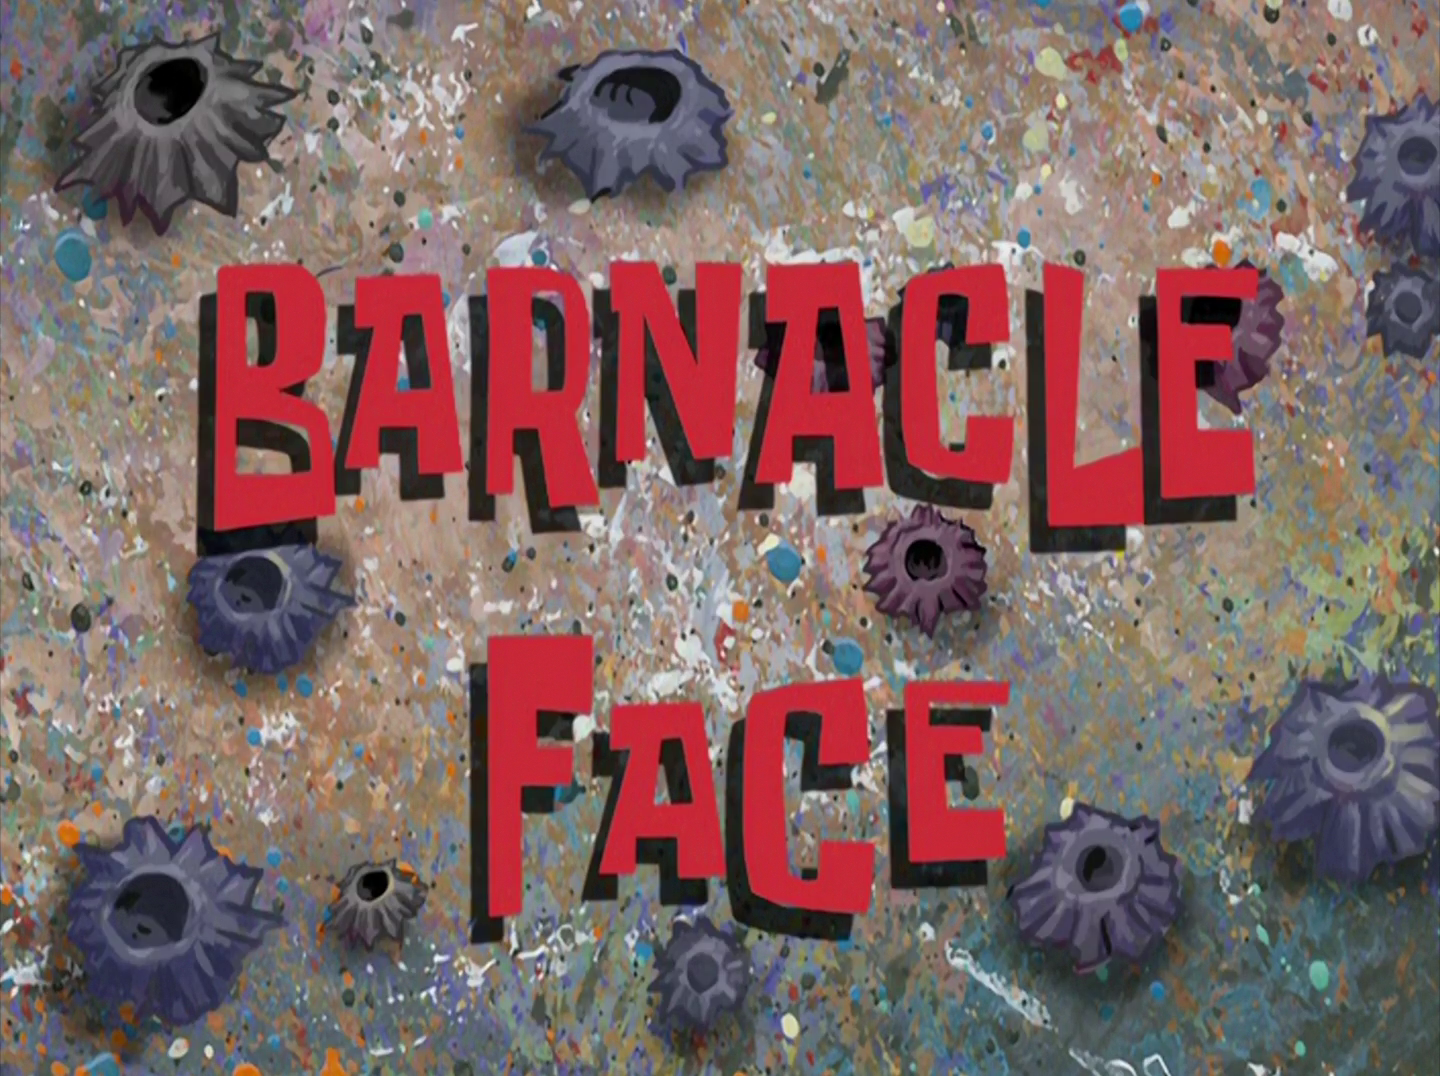 Barnacle Face/gallery